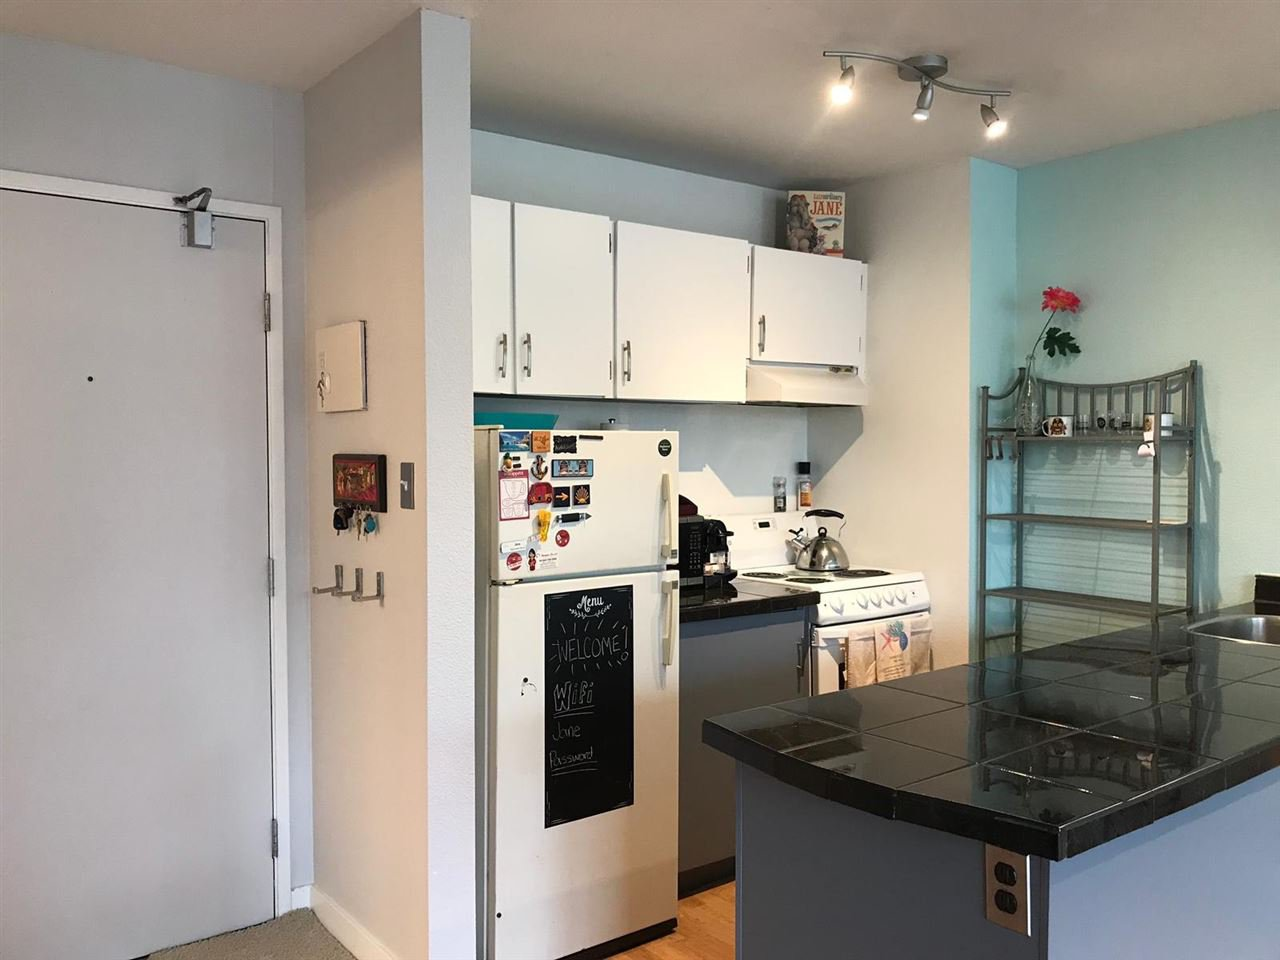 Main Photo: 718 1330 BURRARD Street in Vancouver: Downtown VW Condo for sale (Vancouver West)  : MLS®# R2405787